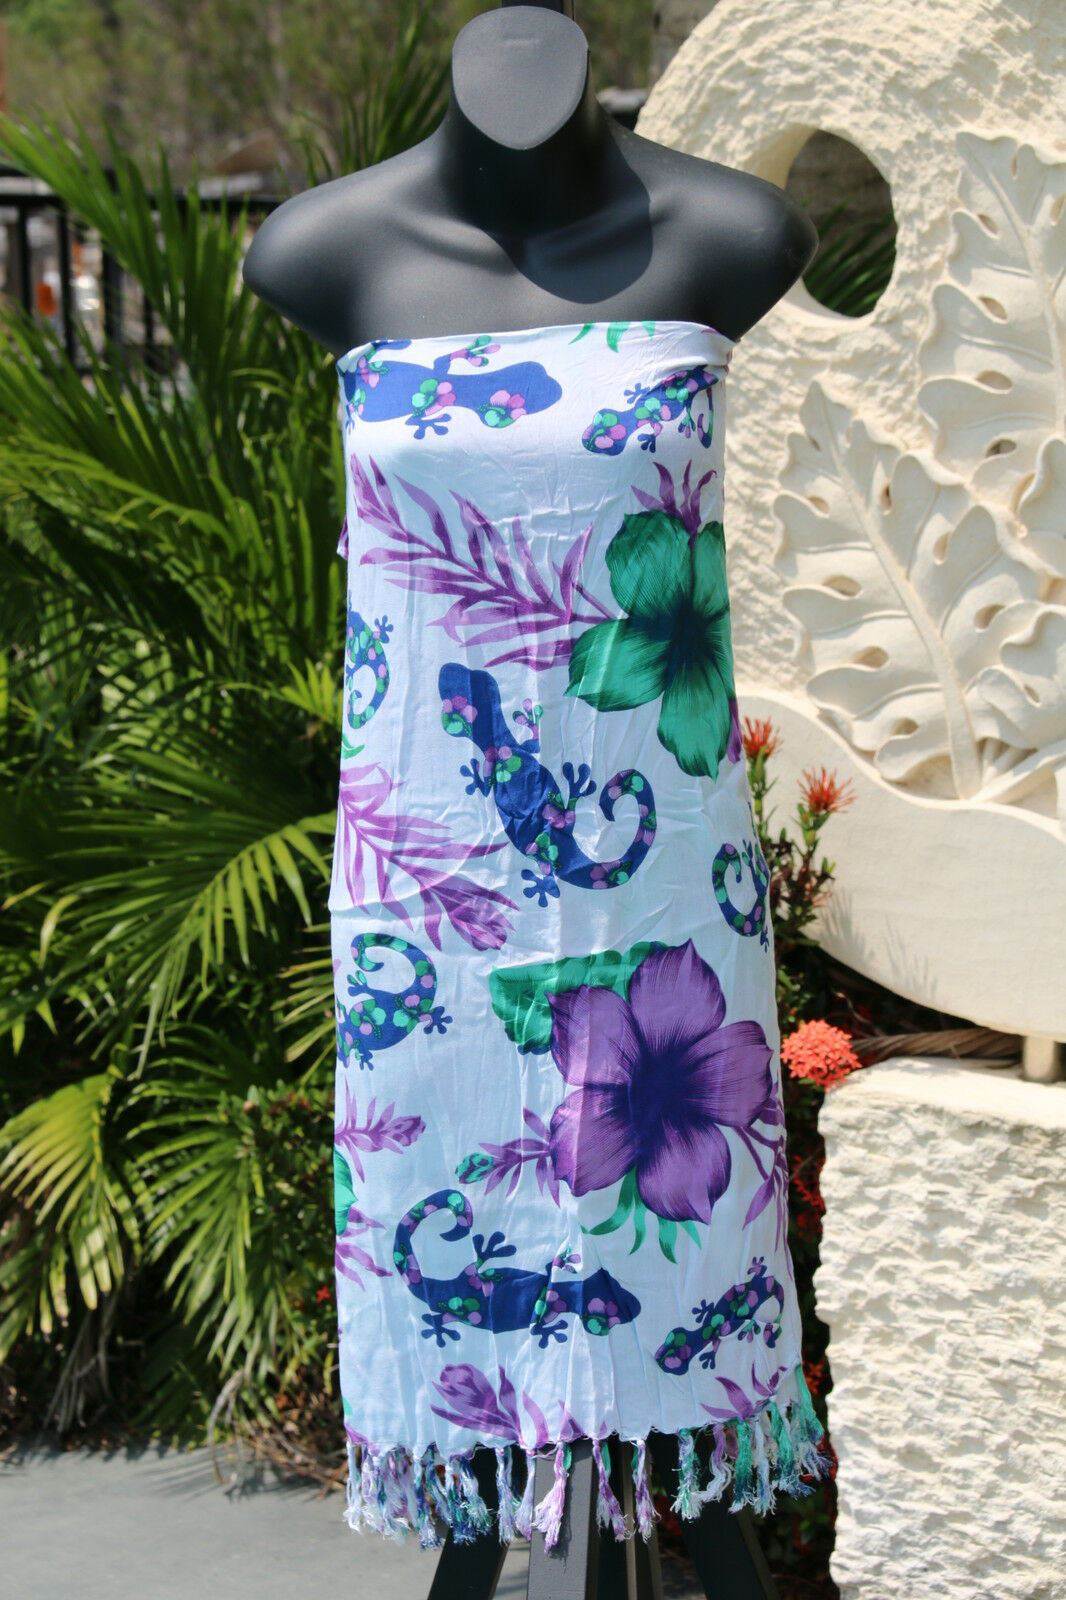 Bali Beach Sarong - Summer Beach Sarong - Bikini Cover Up - NEW 2 COLOURS AVAIL.